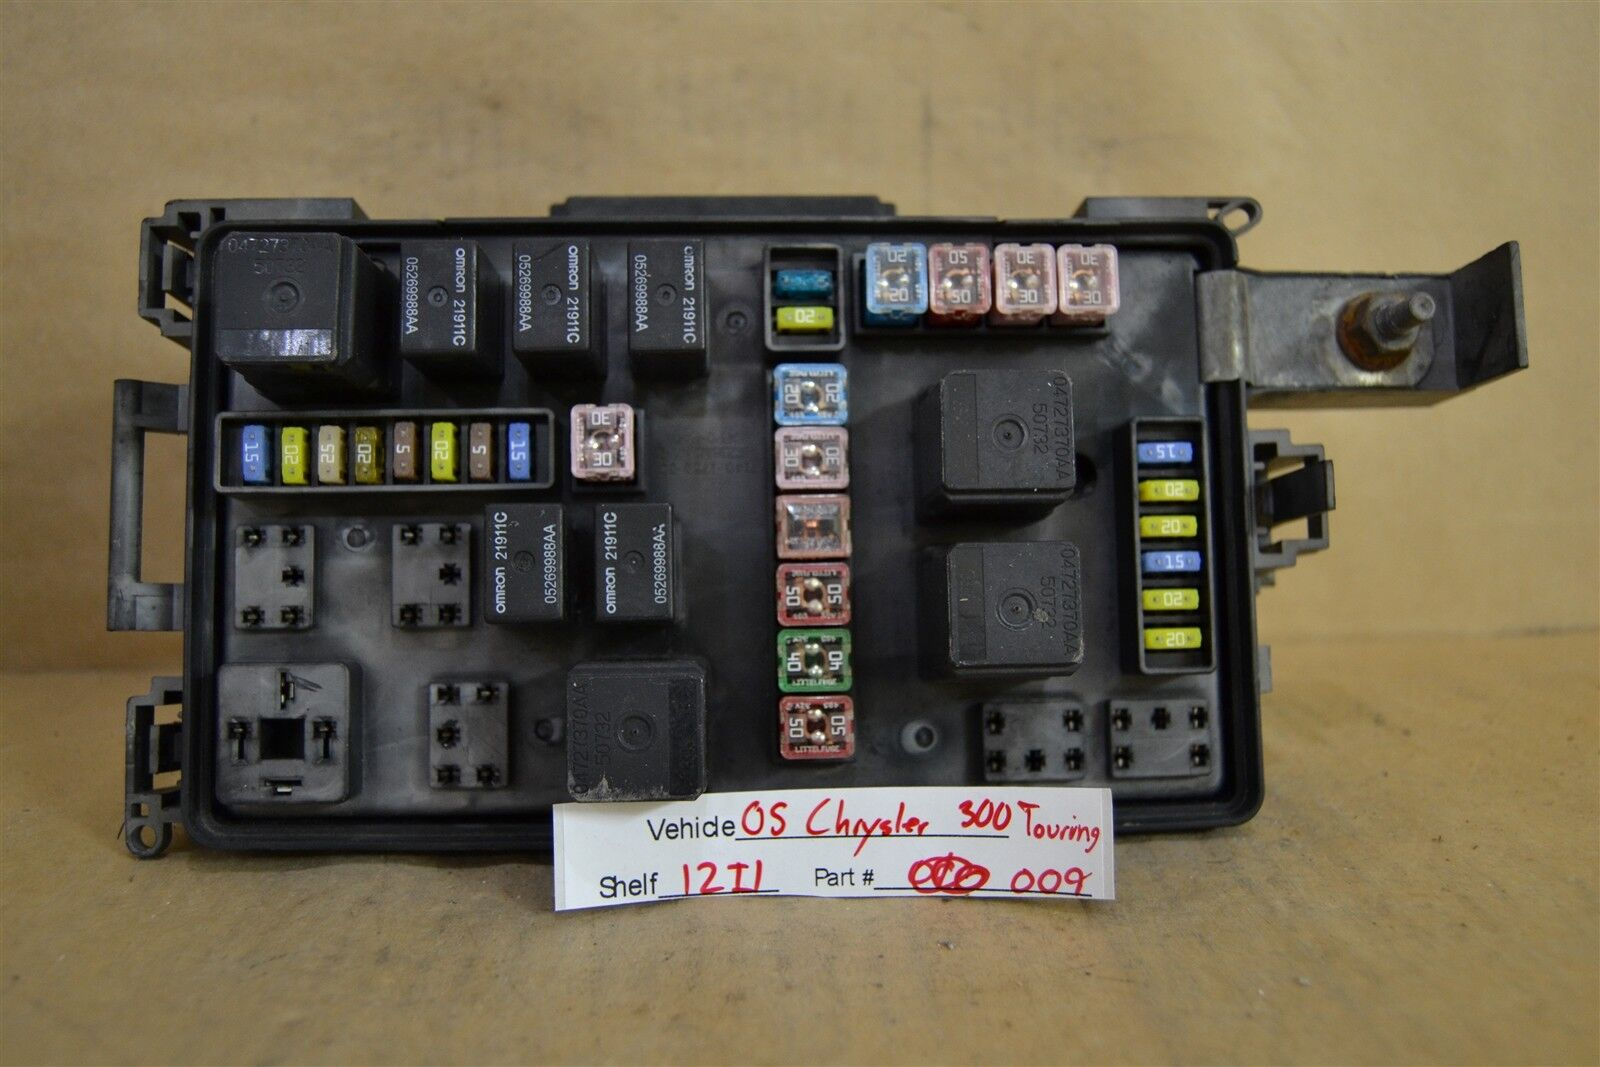 Used Chrysler Computers Chips Cruise Control And Related Parts For 2000 300m Fuse Box 2005 Relay W Light Unit 7140179830 Module 2009 12i1